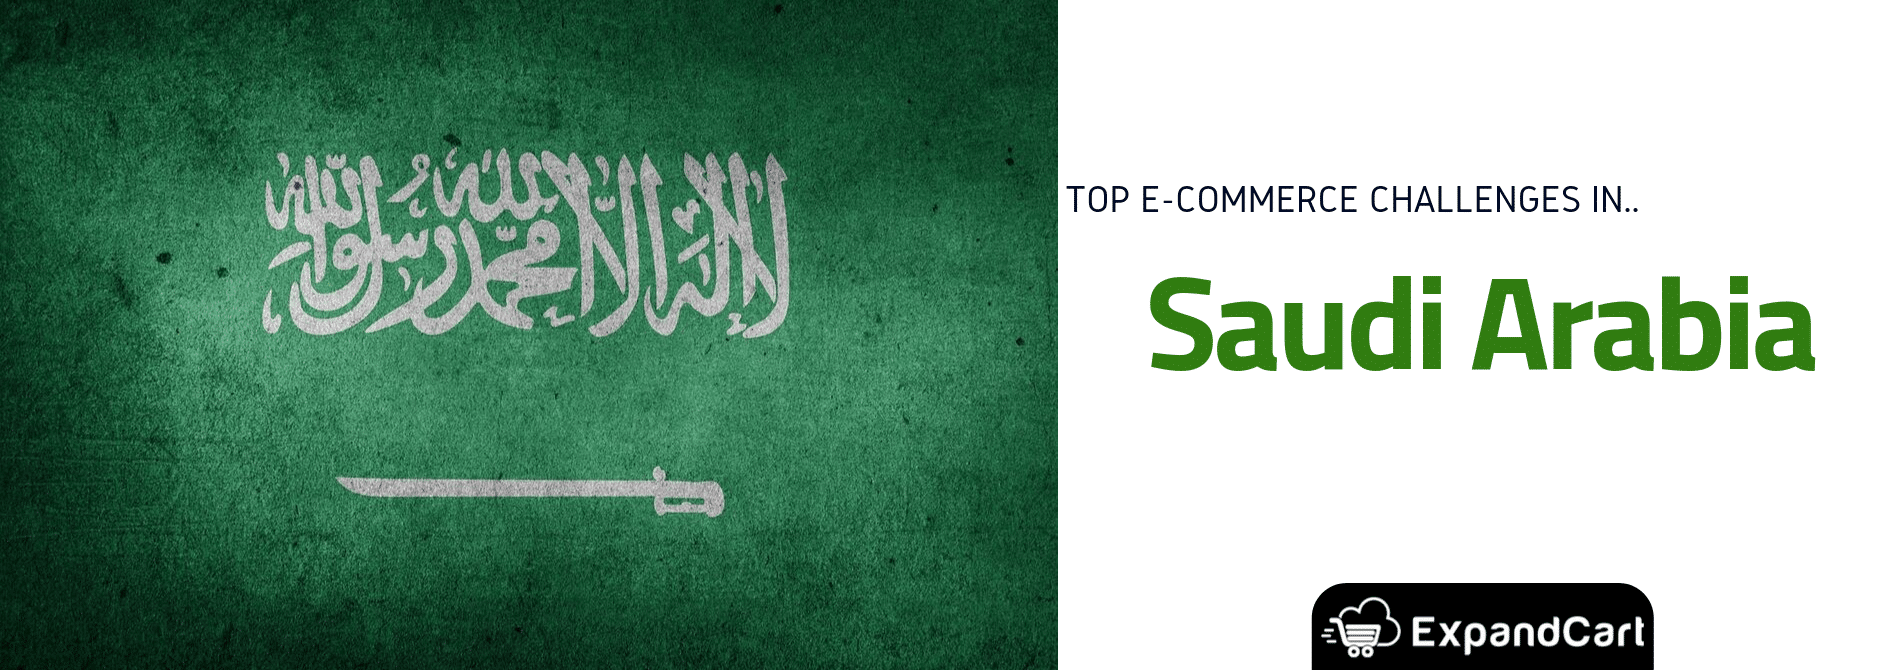 Top Challenges Facing E-commerce in Saudi Arabia … Your Full Guide